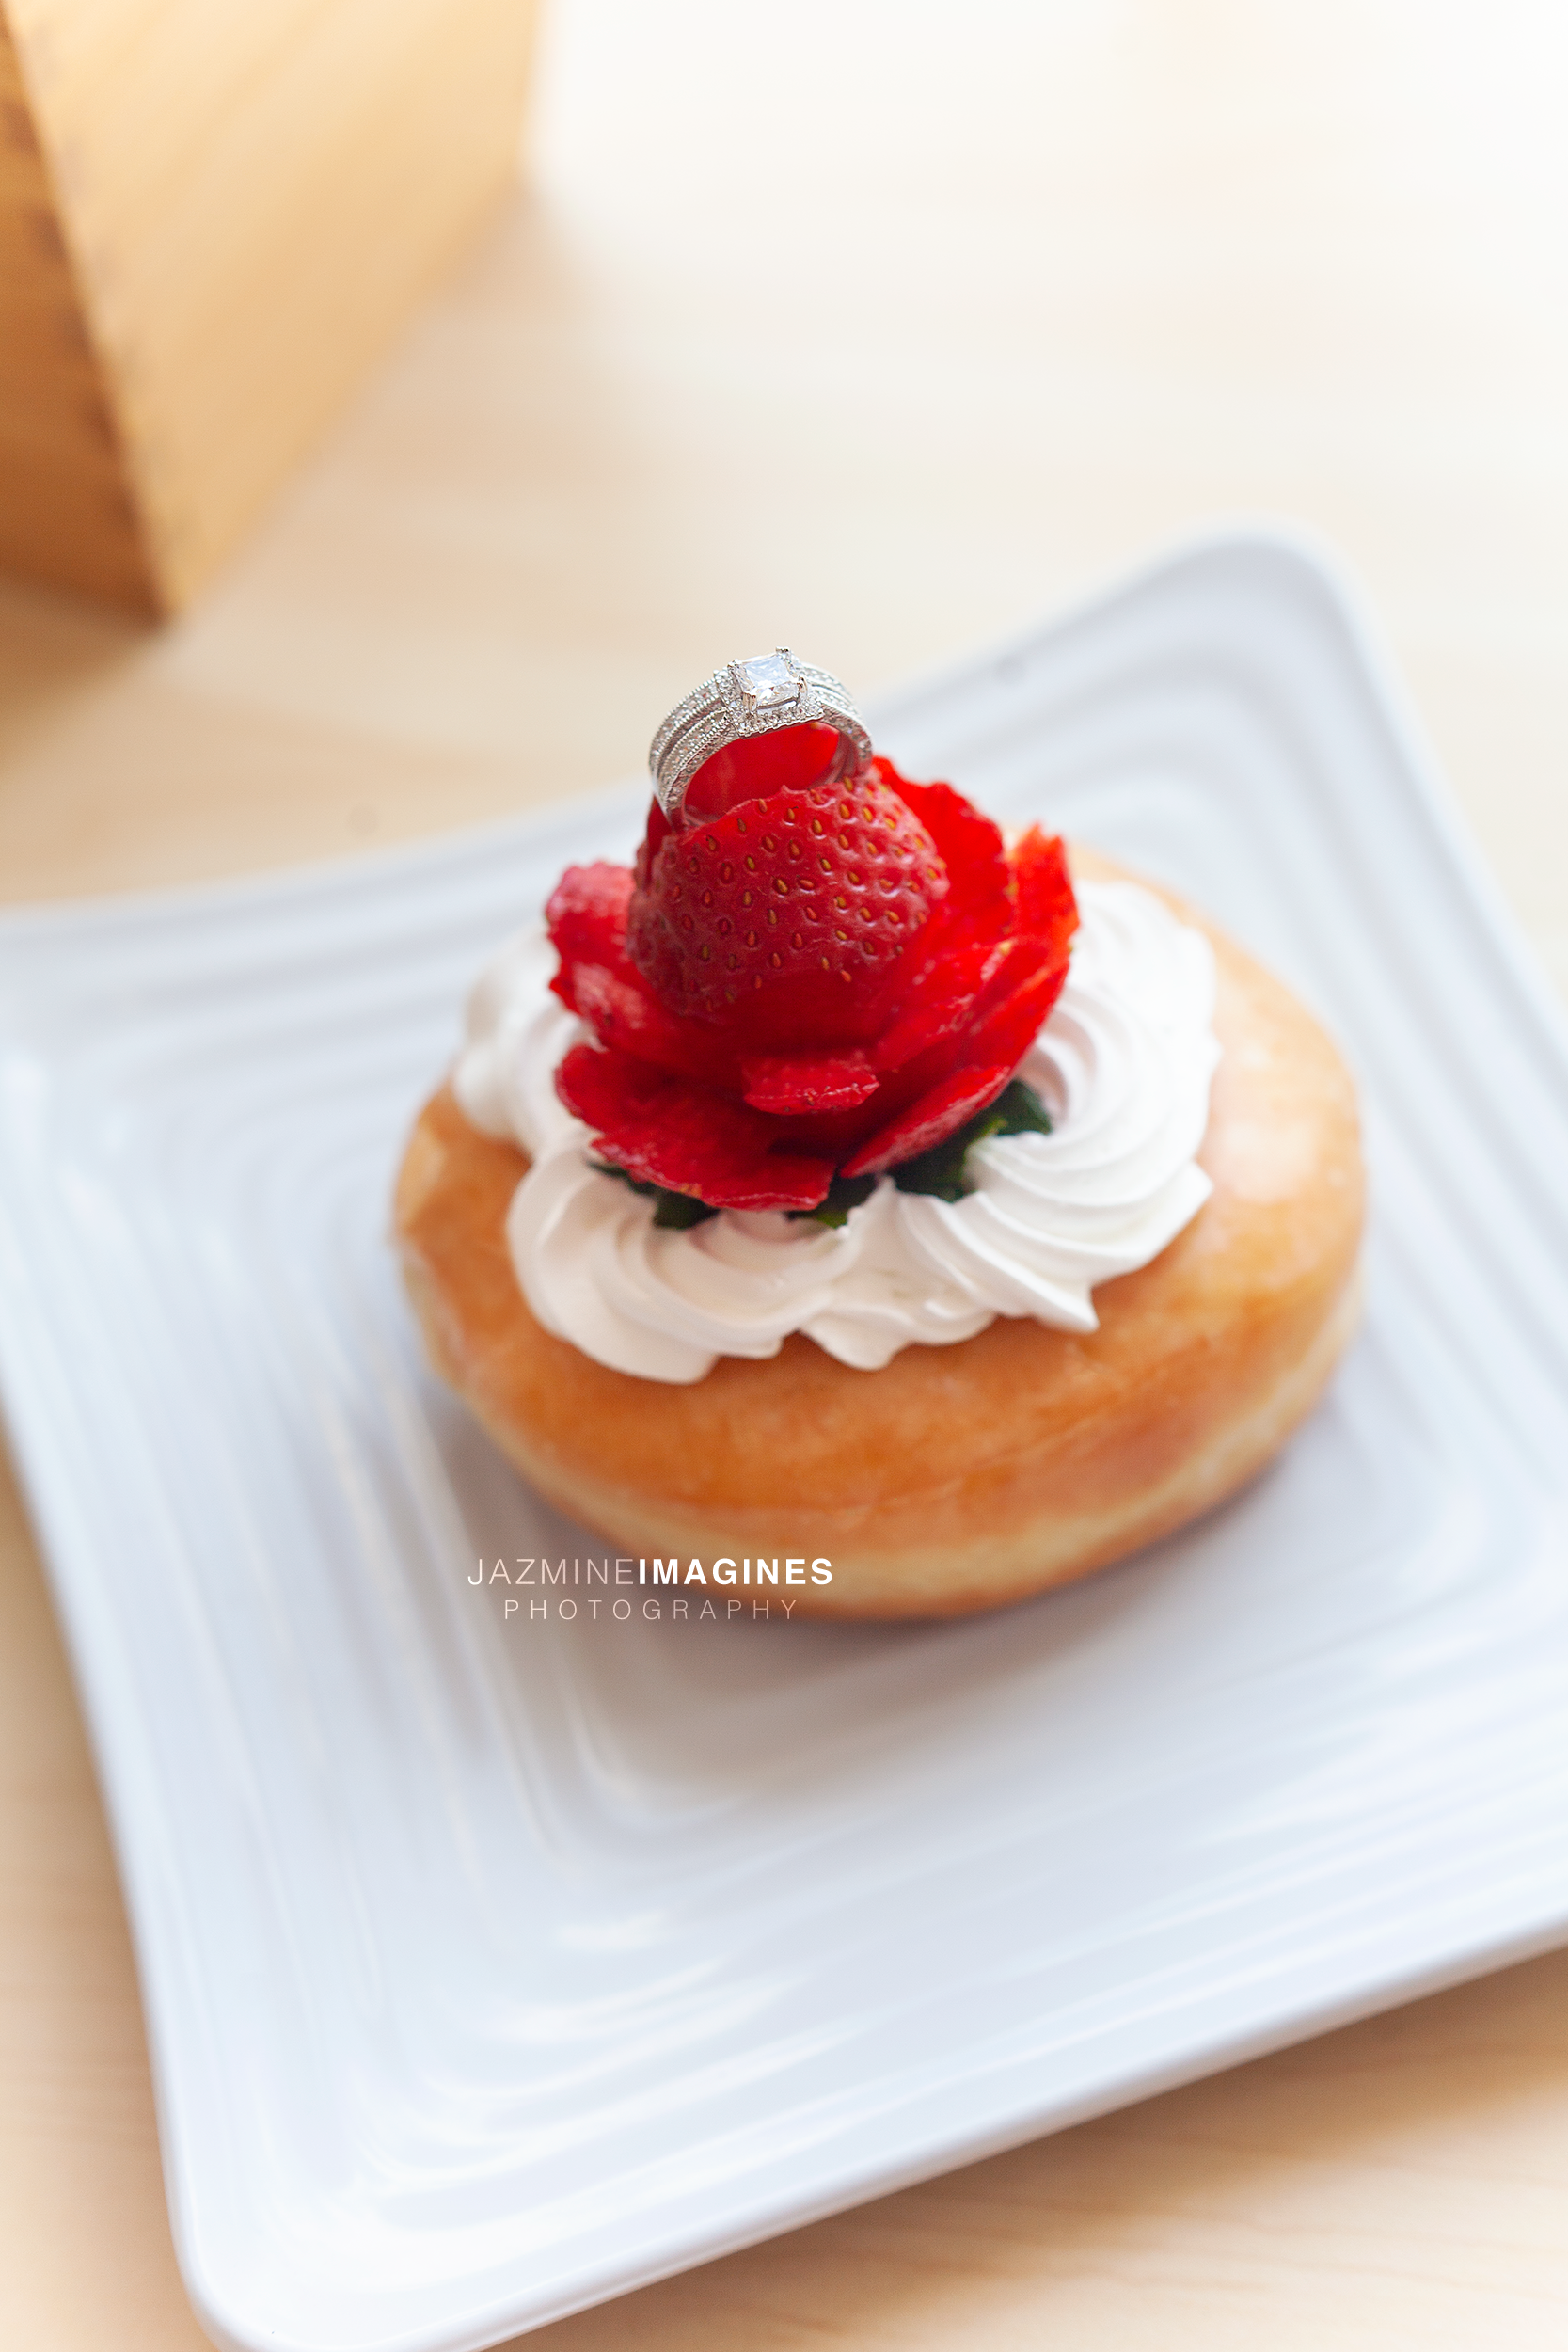 Chocolate Strawberry Donut from Wow Donuts: Photographed by Jazmine Imagines Photography